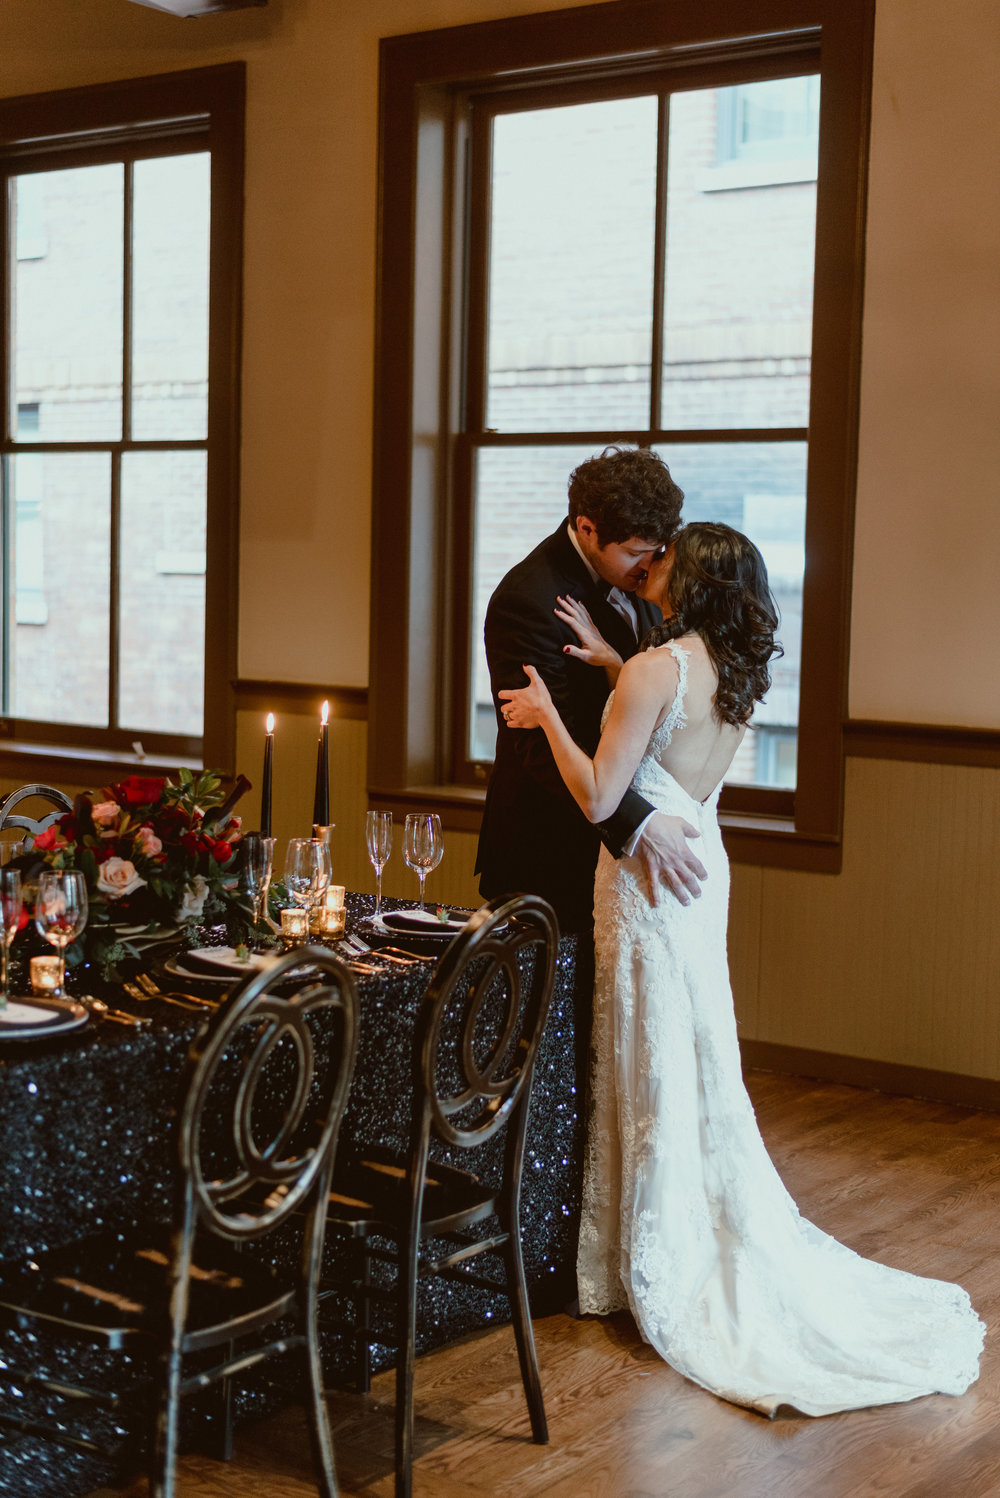 Black and Gold New Year's Eve Wedding - The Overwhelmed Bride Wedding BlogBlack and Gold New Year's Eve Wedding - The Overwhelmed Bride Wedding Blog